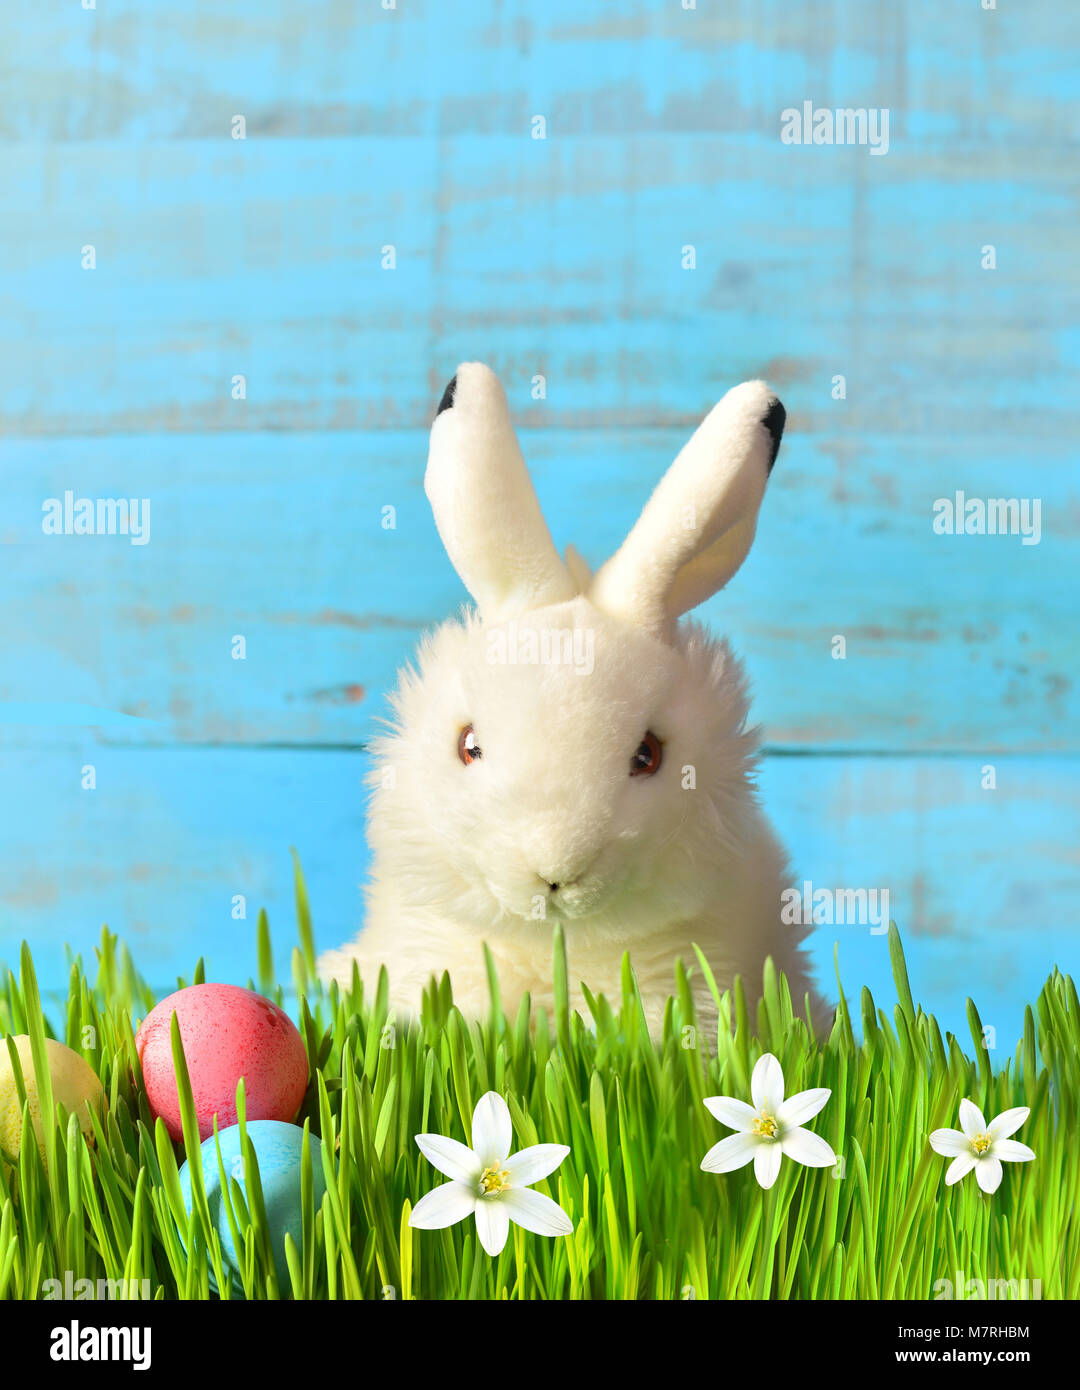 Funny Easter Background Images